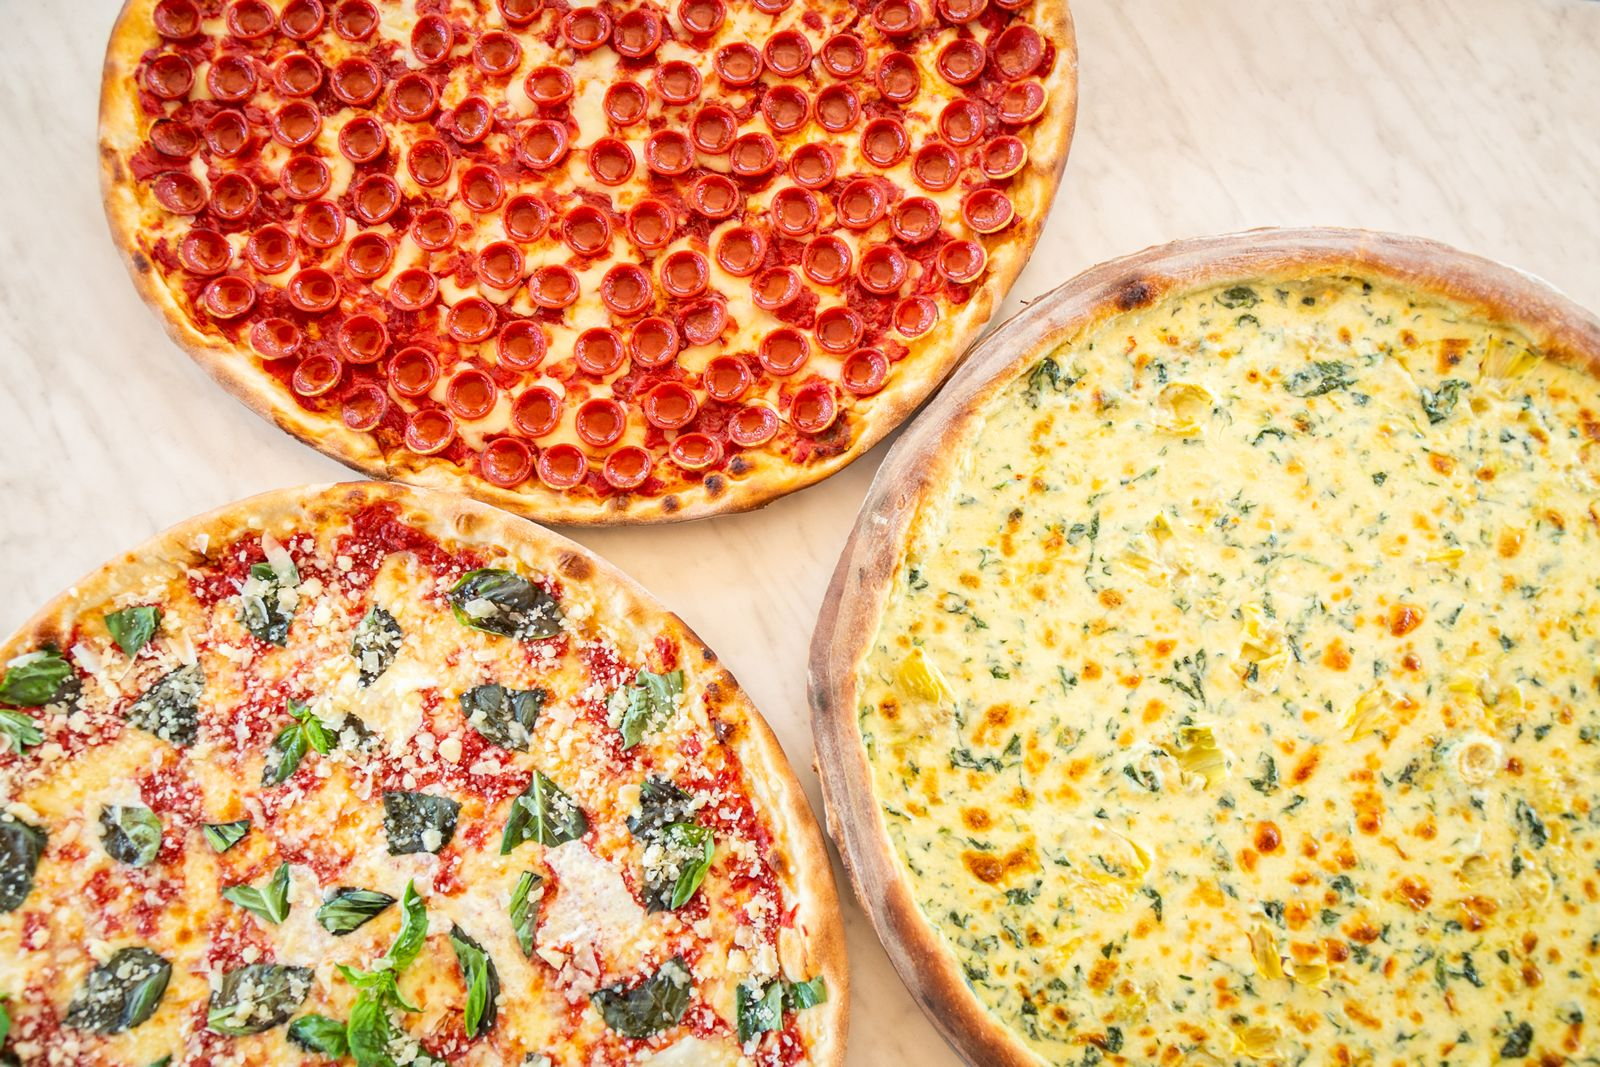 The famed New York-style pizzeria will open doors at the second Arizona location in Phoenix on Friday, May 21.